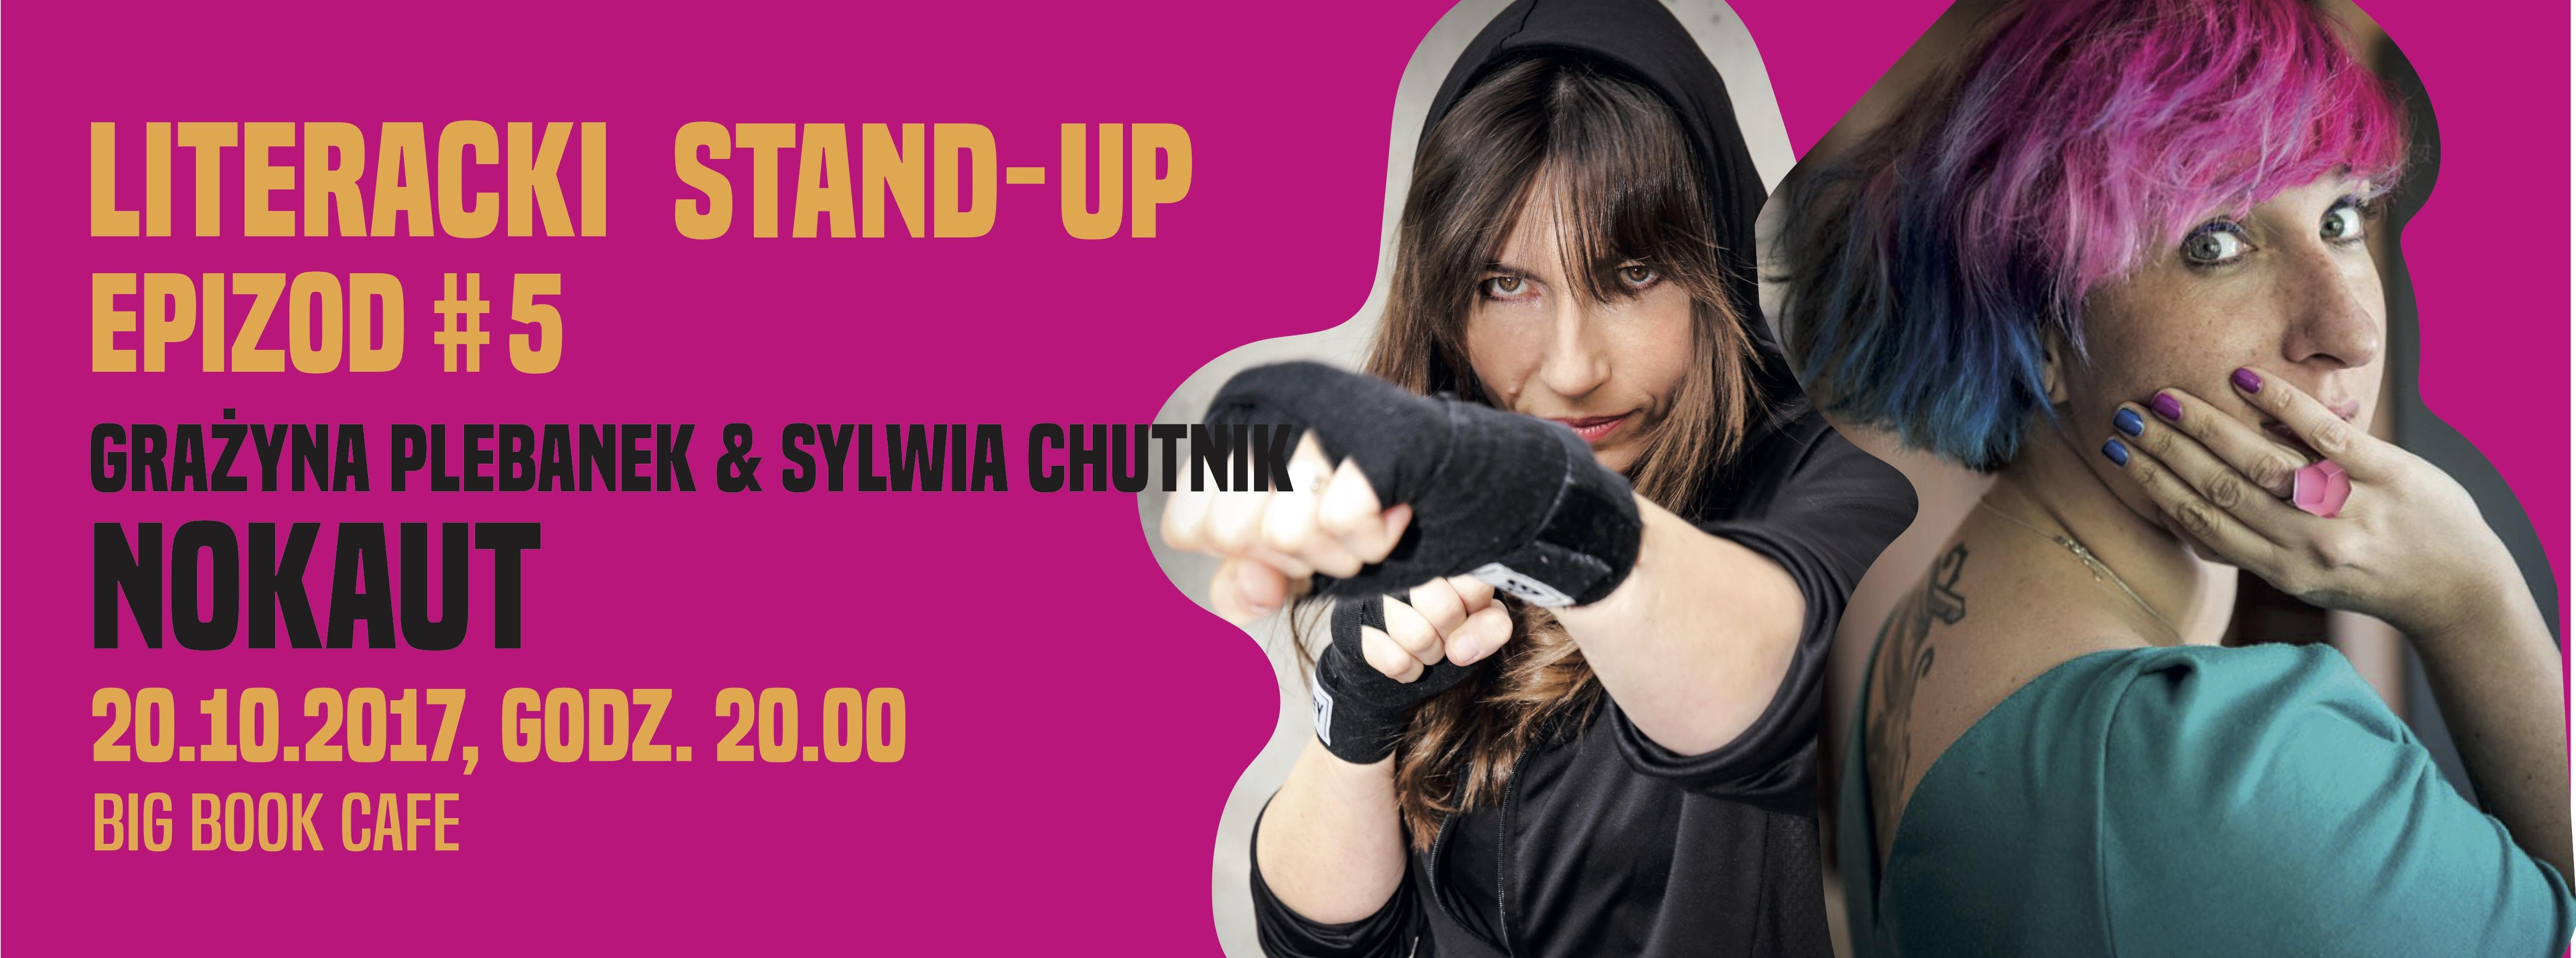 Big Book Cafe , stand-up,  Sylwia Chutnik, Grażyna Plebanek